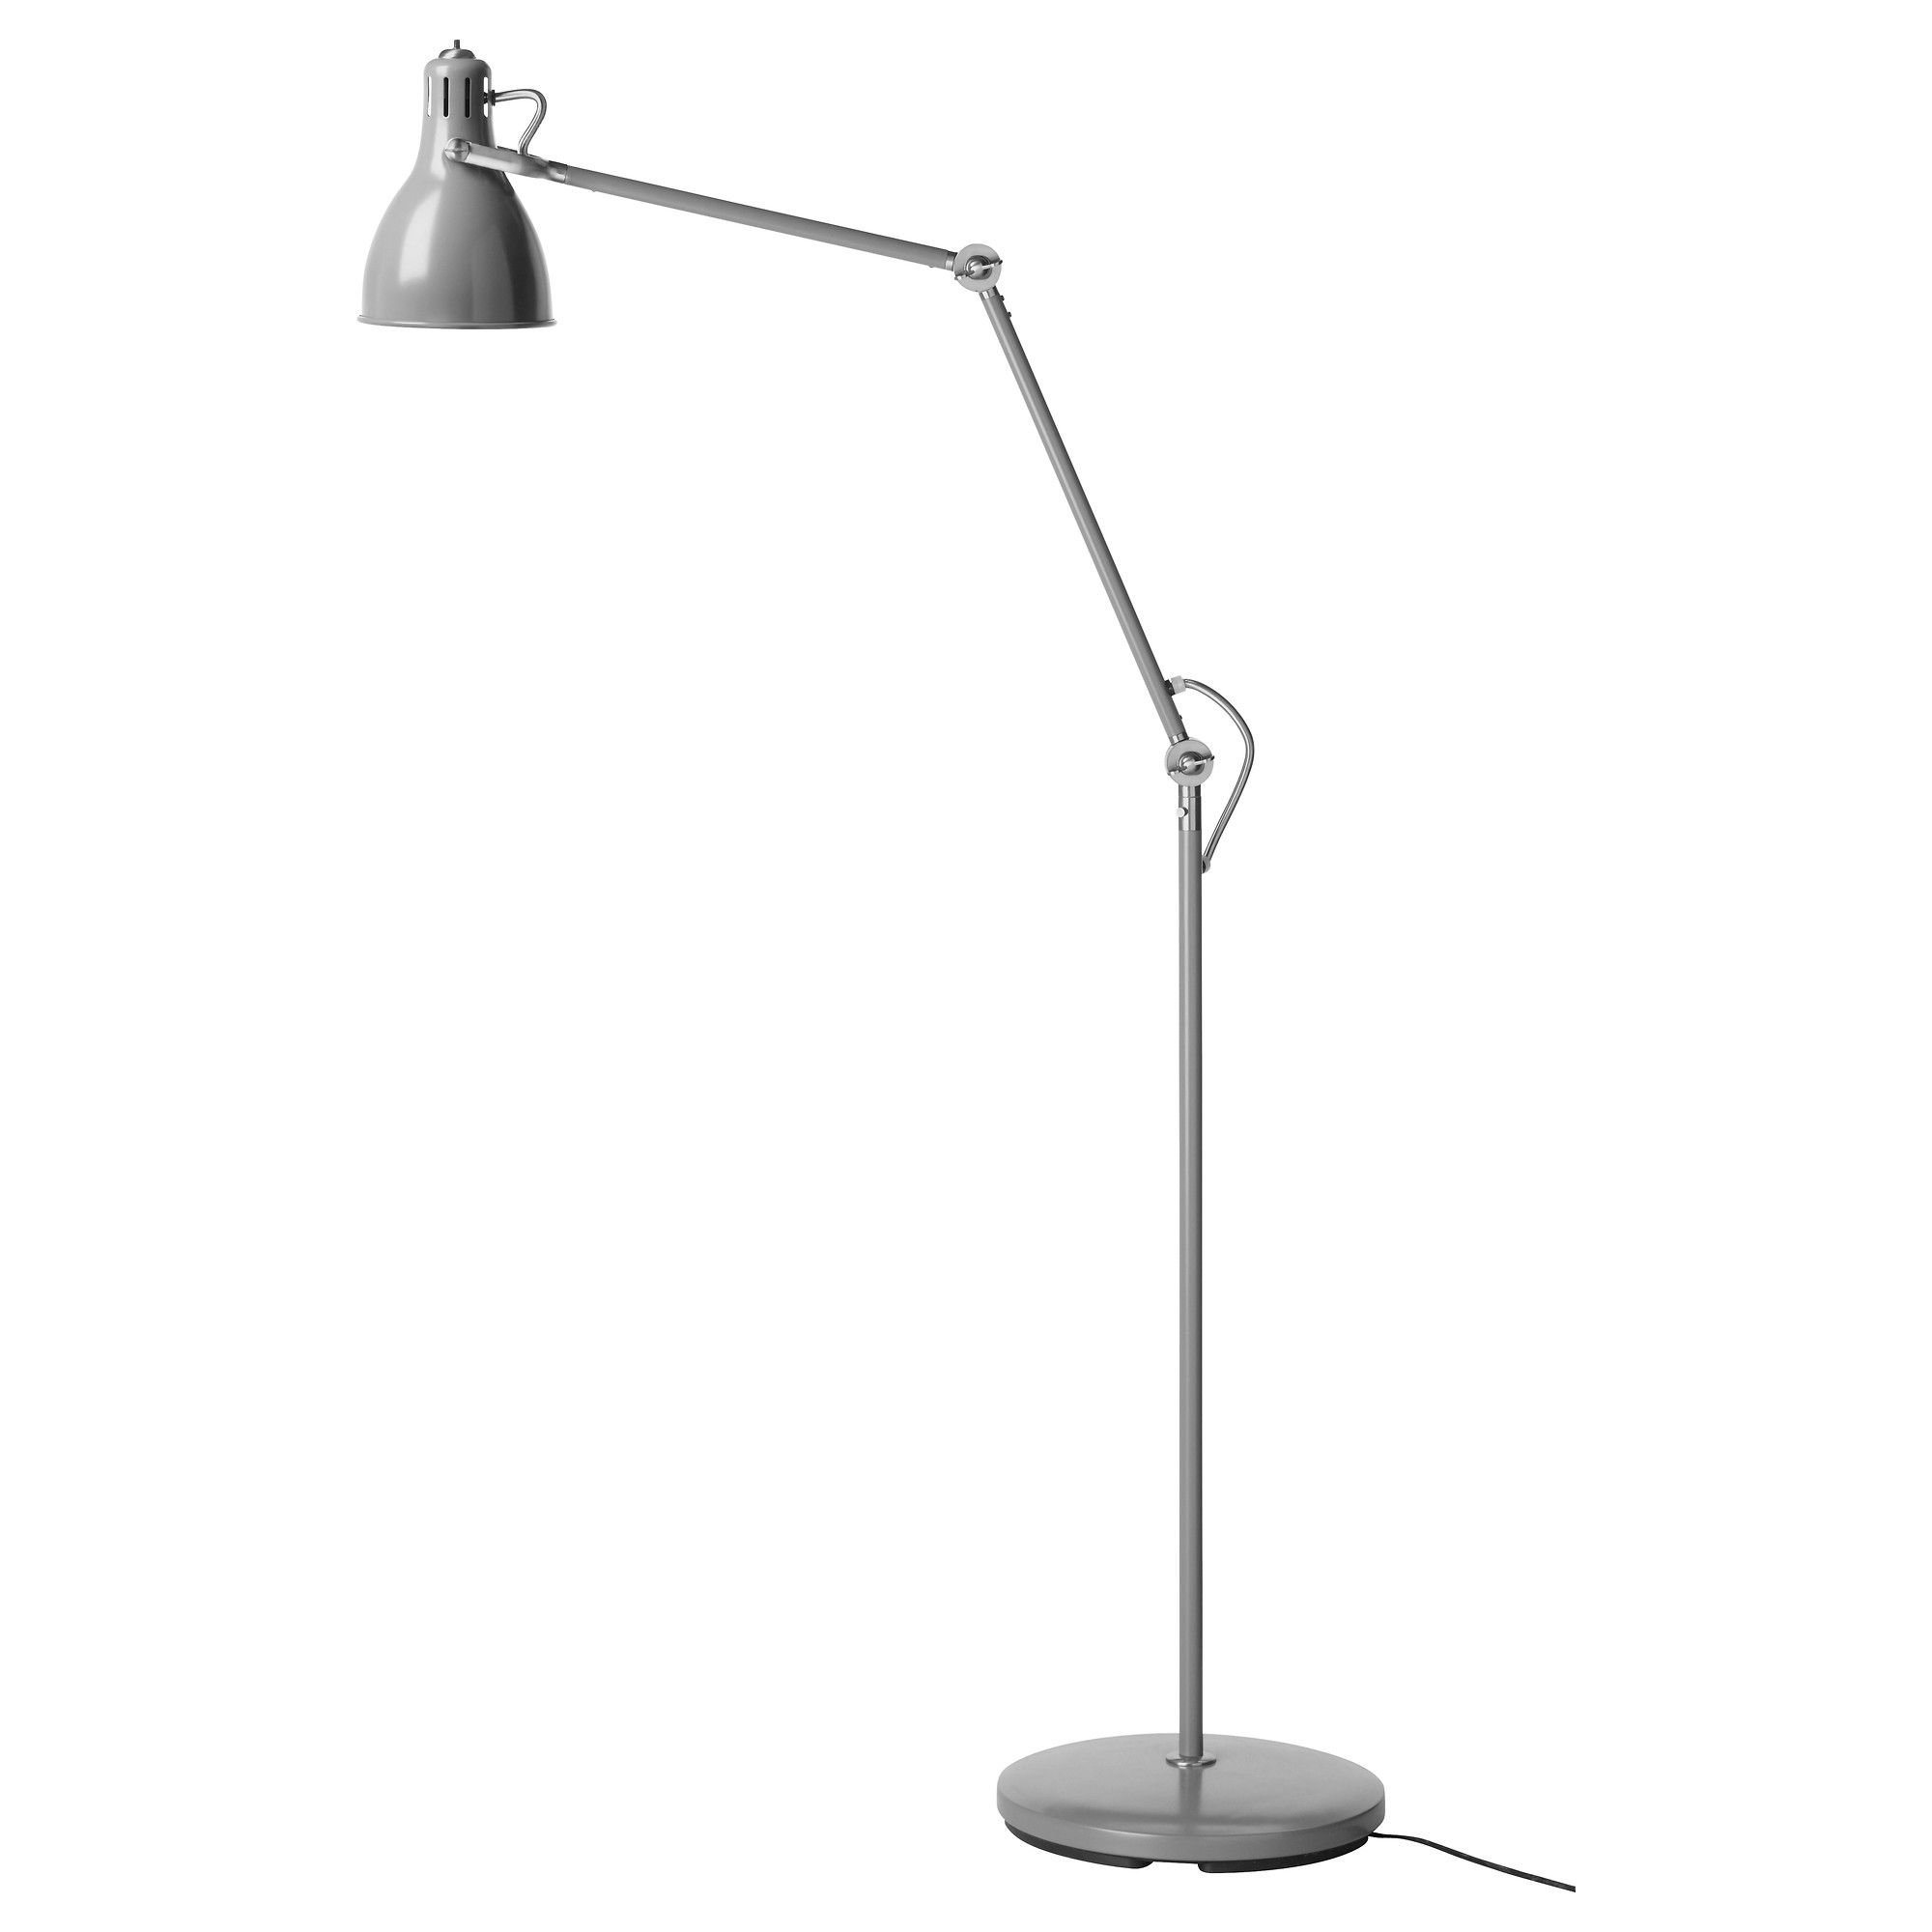 US Furniture and Home Furnishings Floor lamp, Ikea